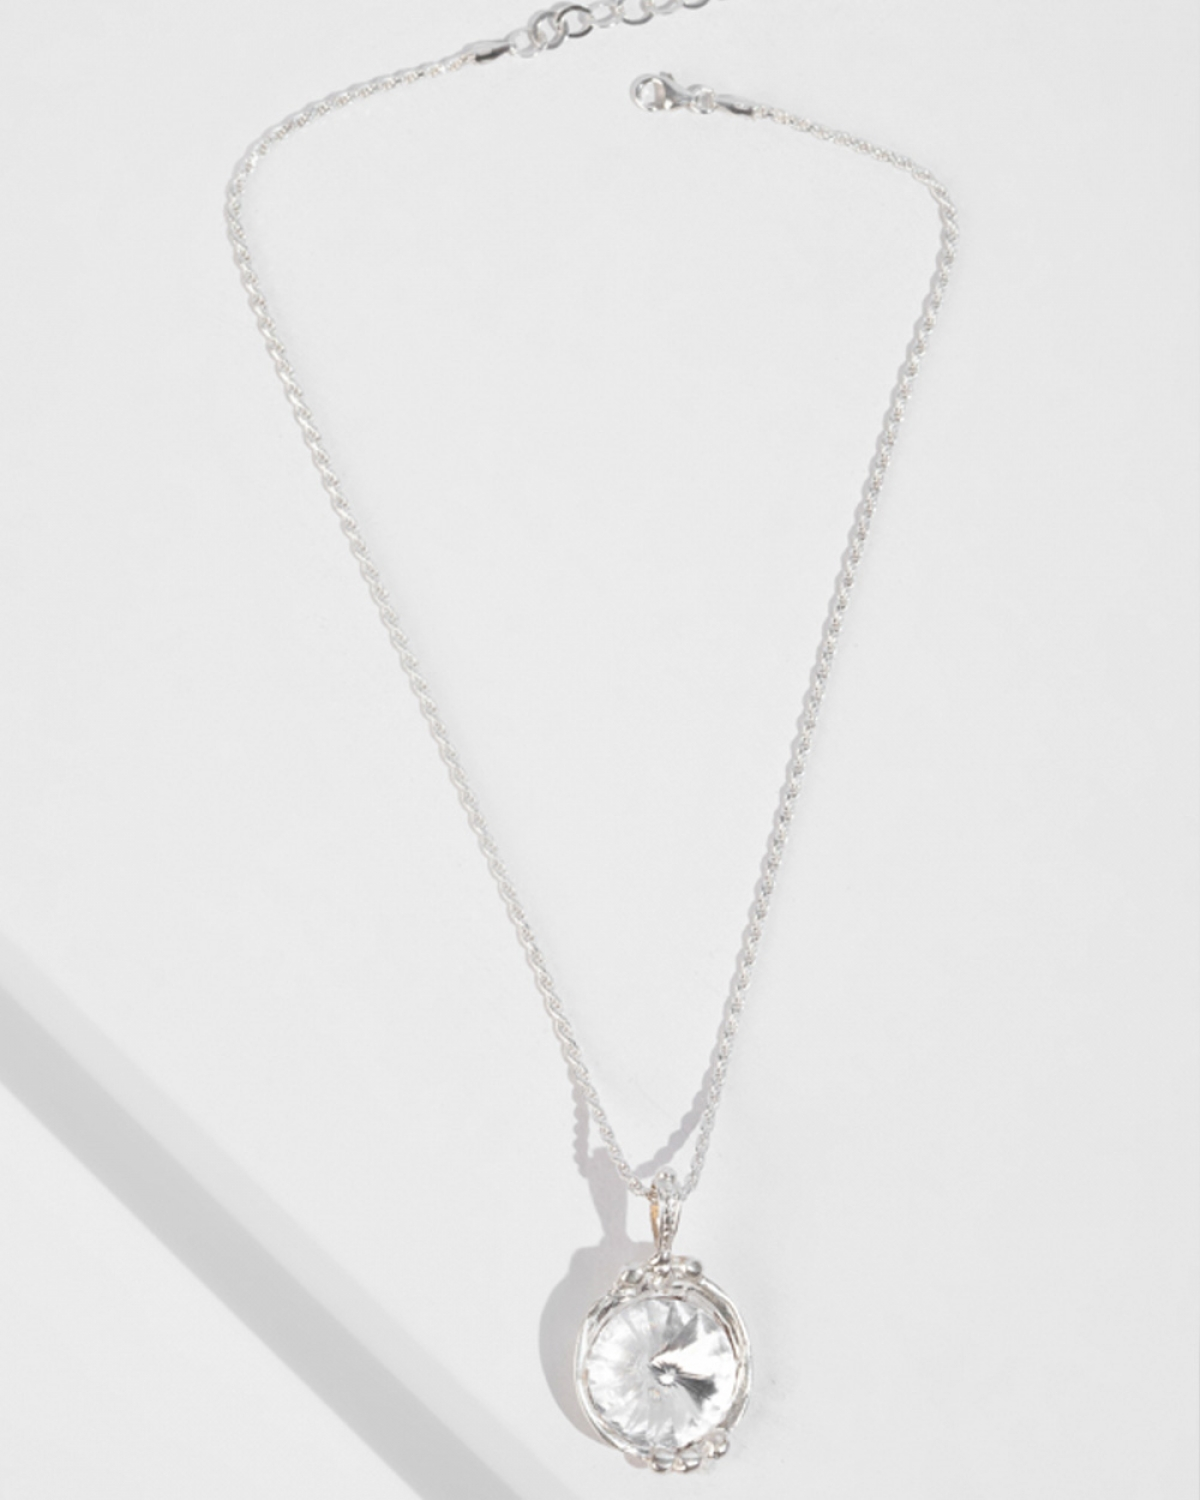 GEORGIANA Silver Pendat/Necklace